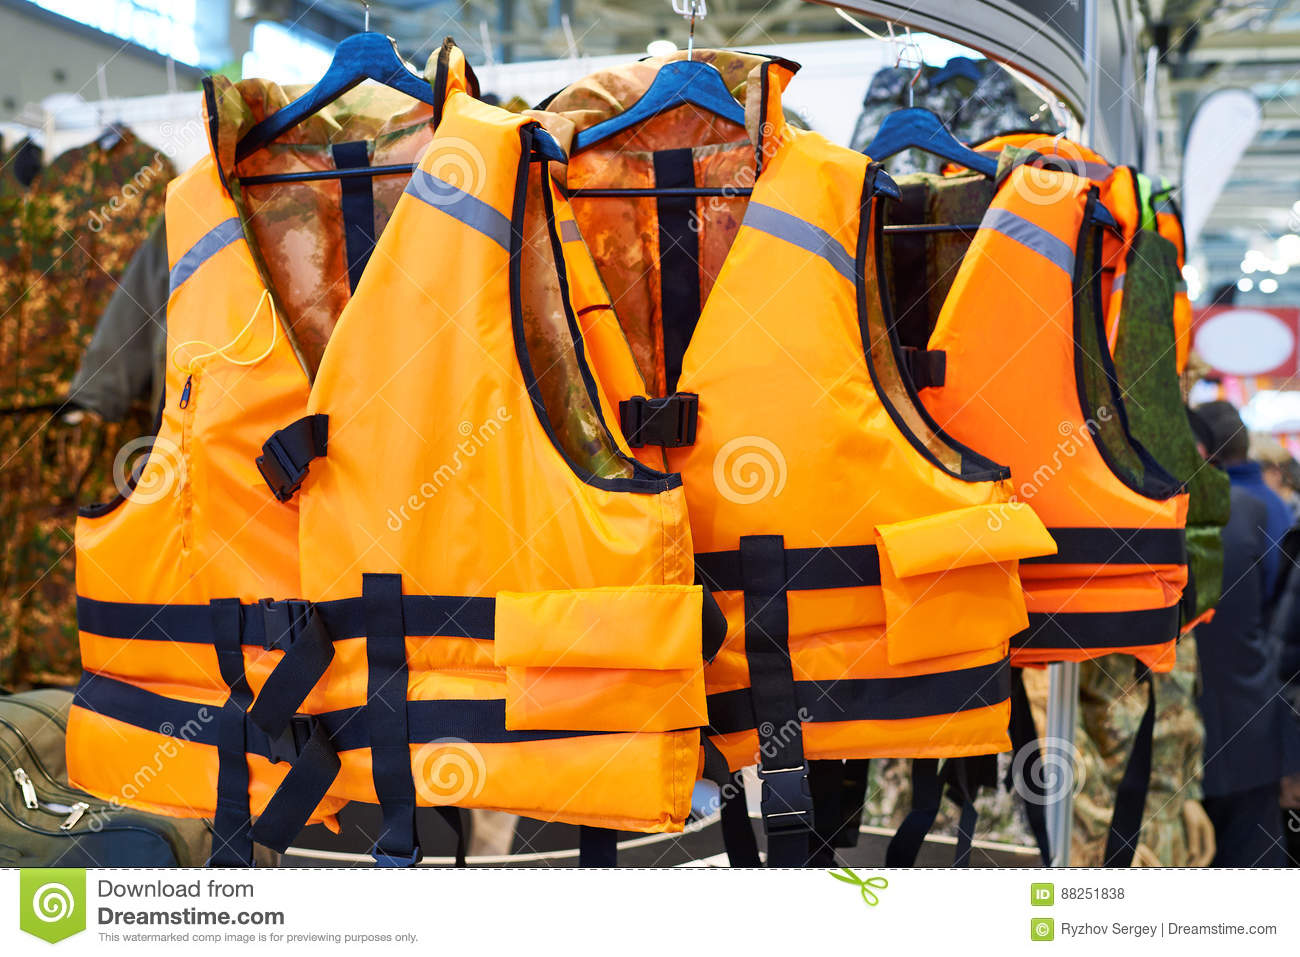 Personal flotation device as life jacket in store